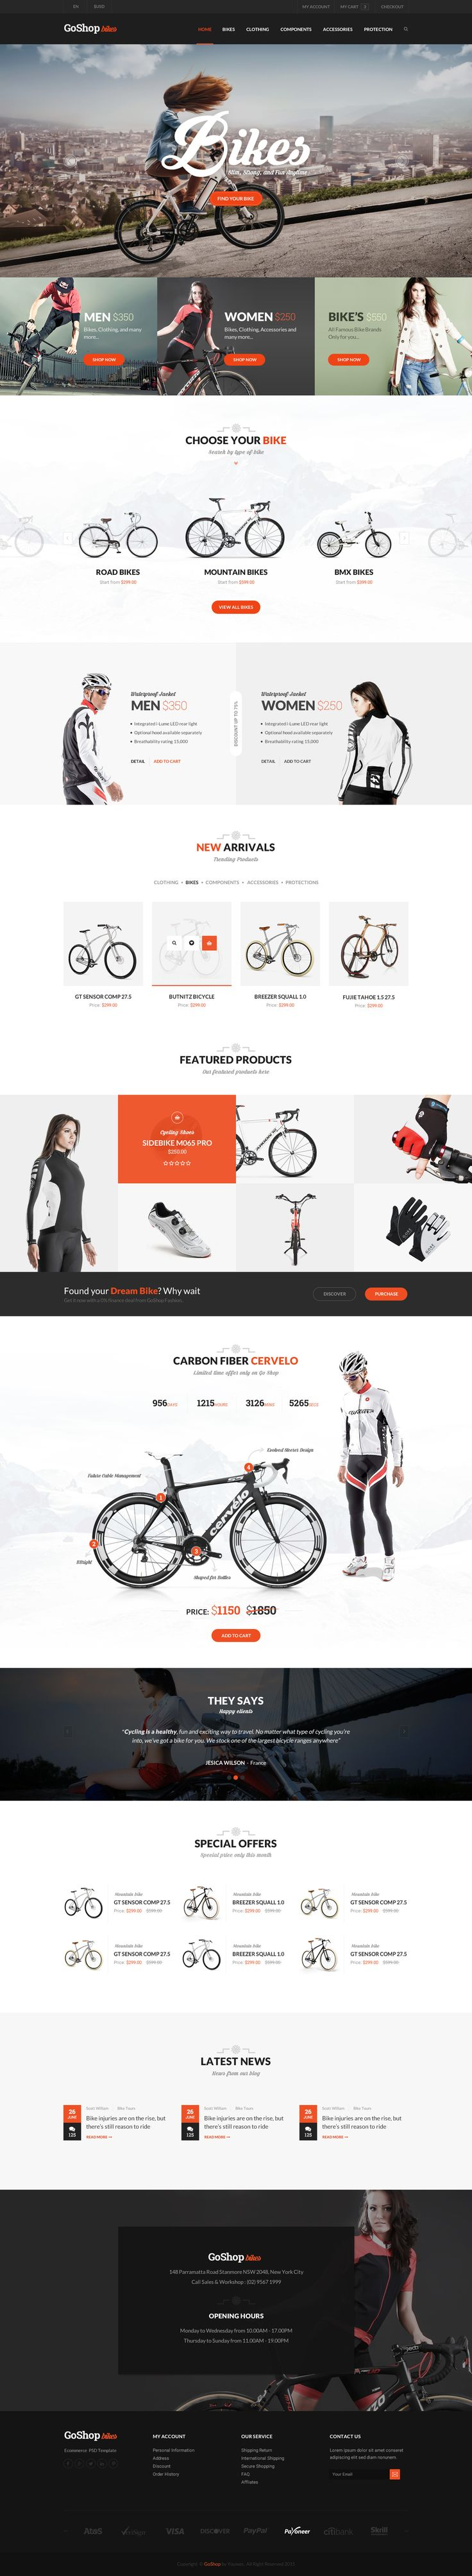 GoShop - eCommerce PSD Template by youwes | ThemeForest